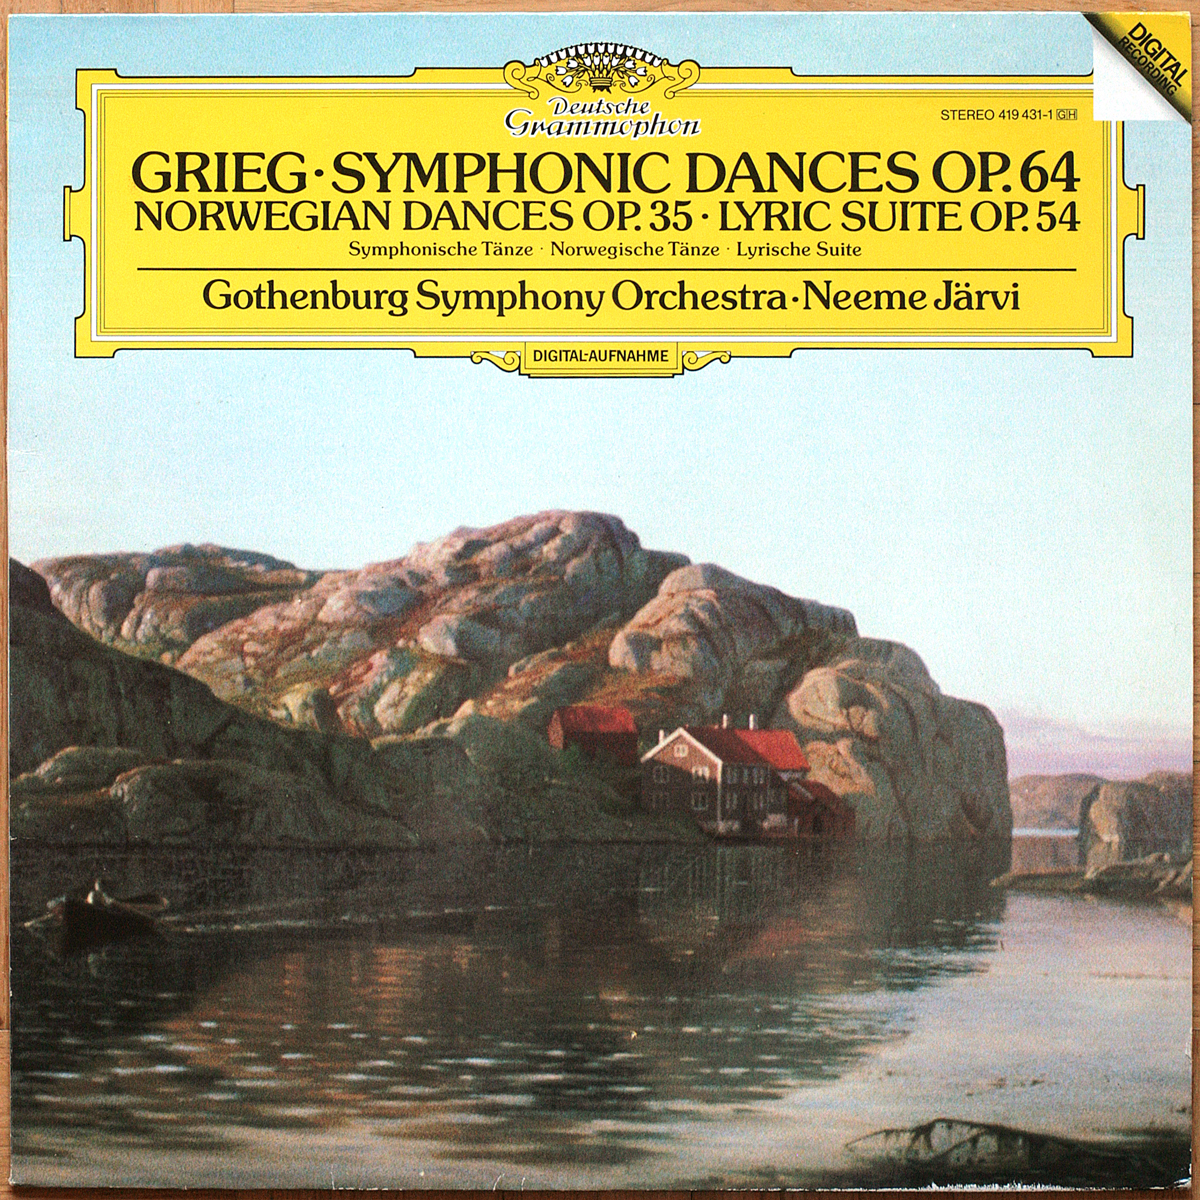 DGG 419 431 Grieg Symphonic & Norwegian Dances Lyric Suite Jarvi Digital Aufnahme